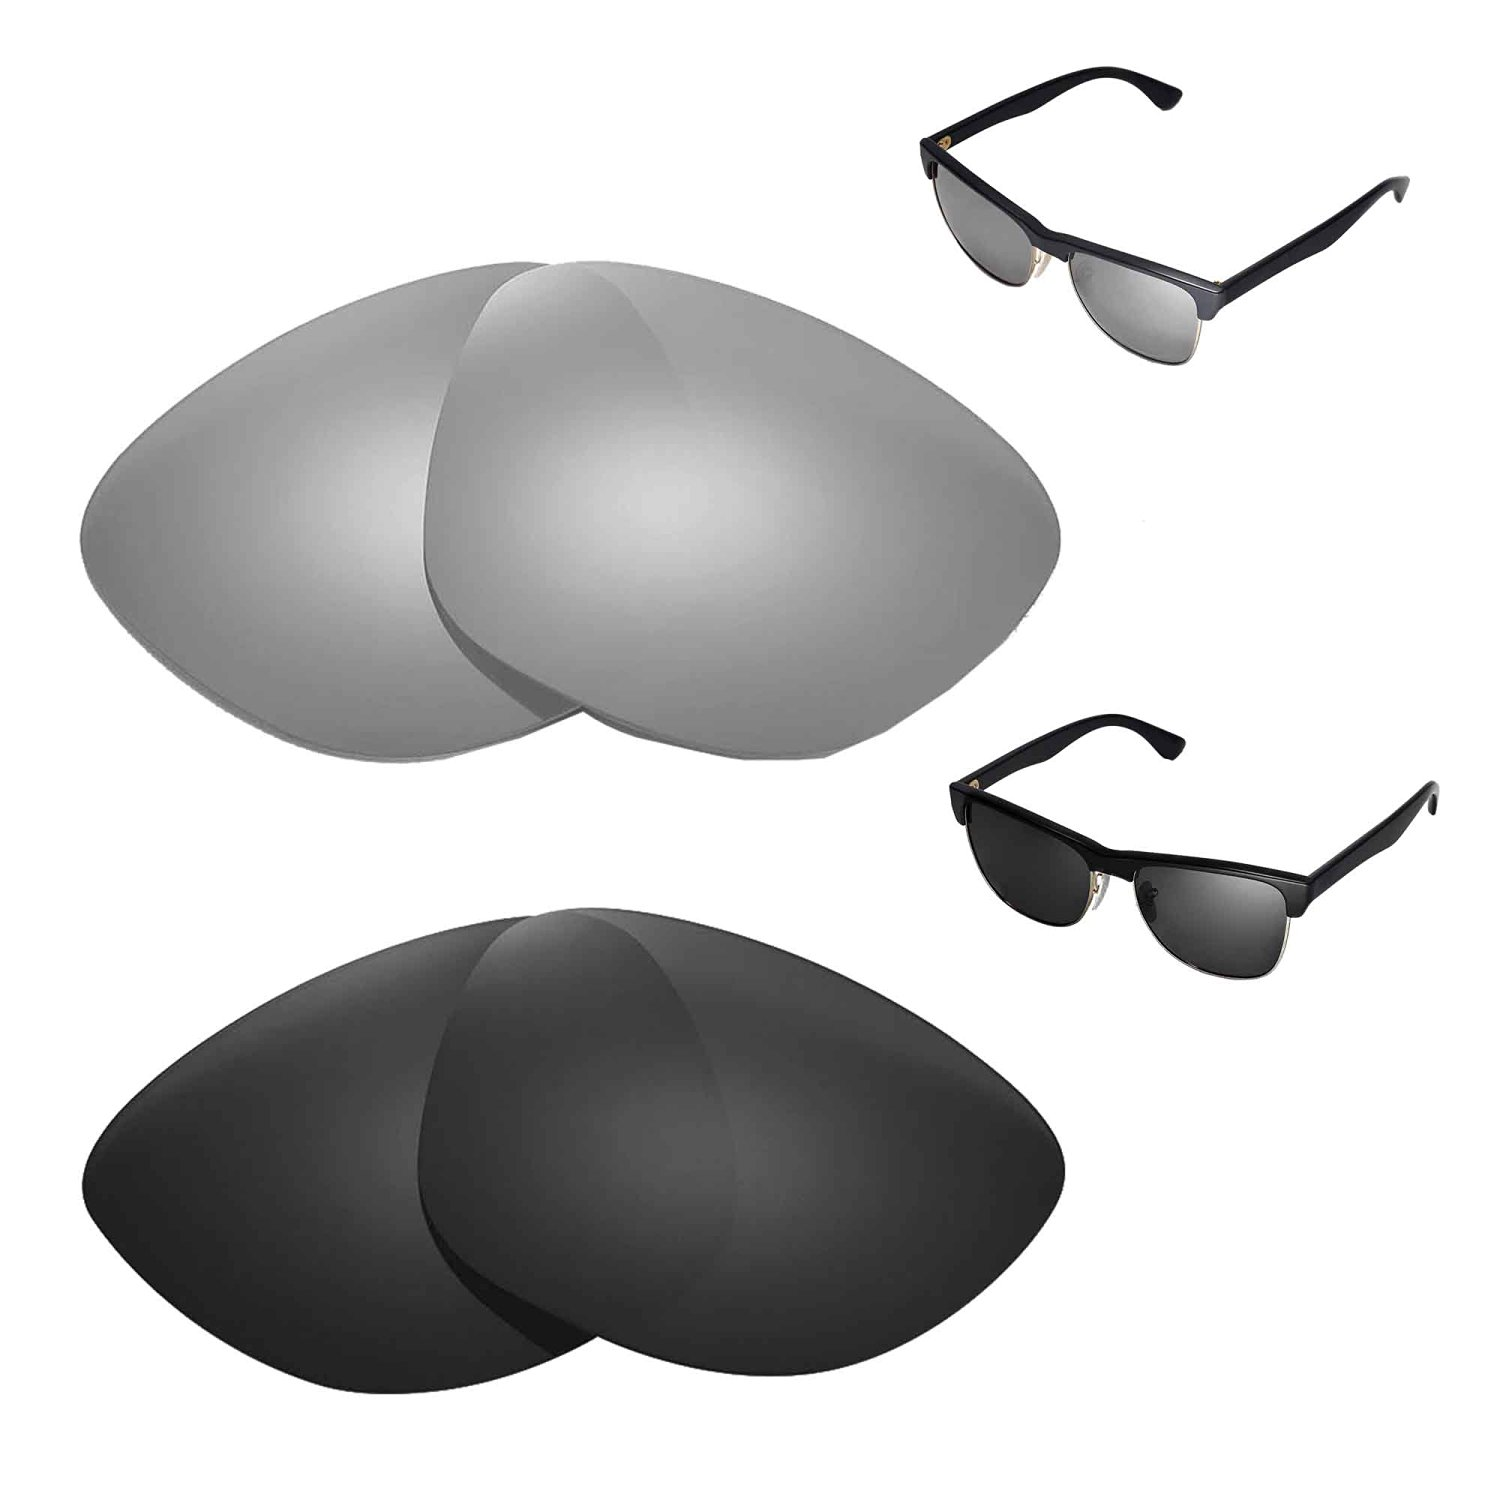 abd2636f2 Walleva Polarized Titanium + Black Replacement Lenses for Ray-Ban RB4175  57mm